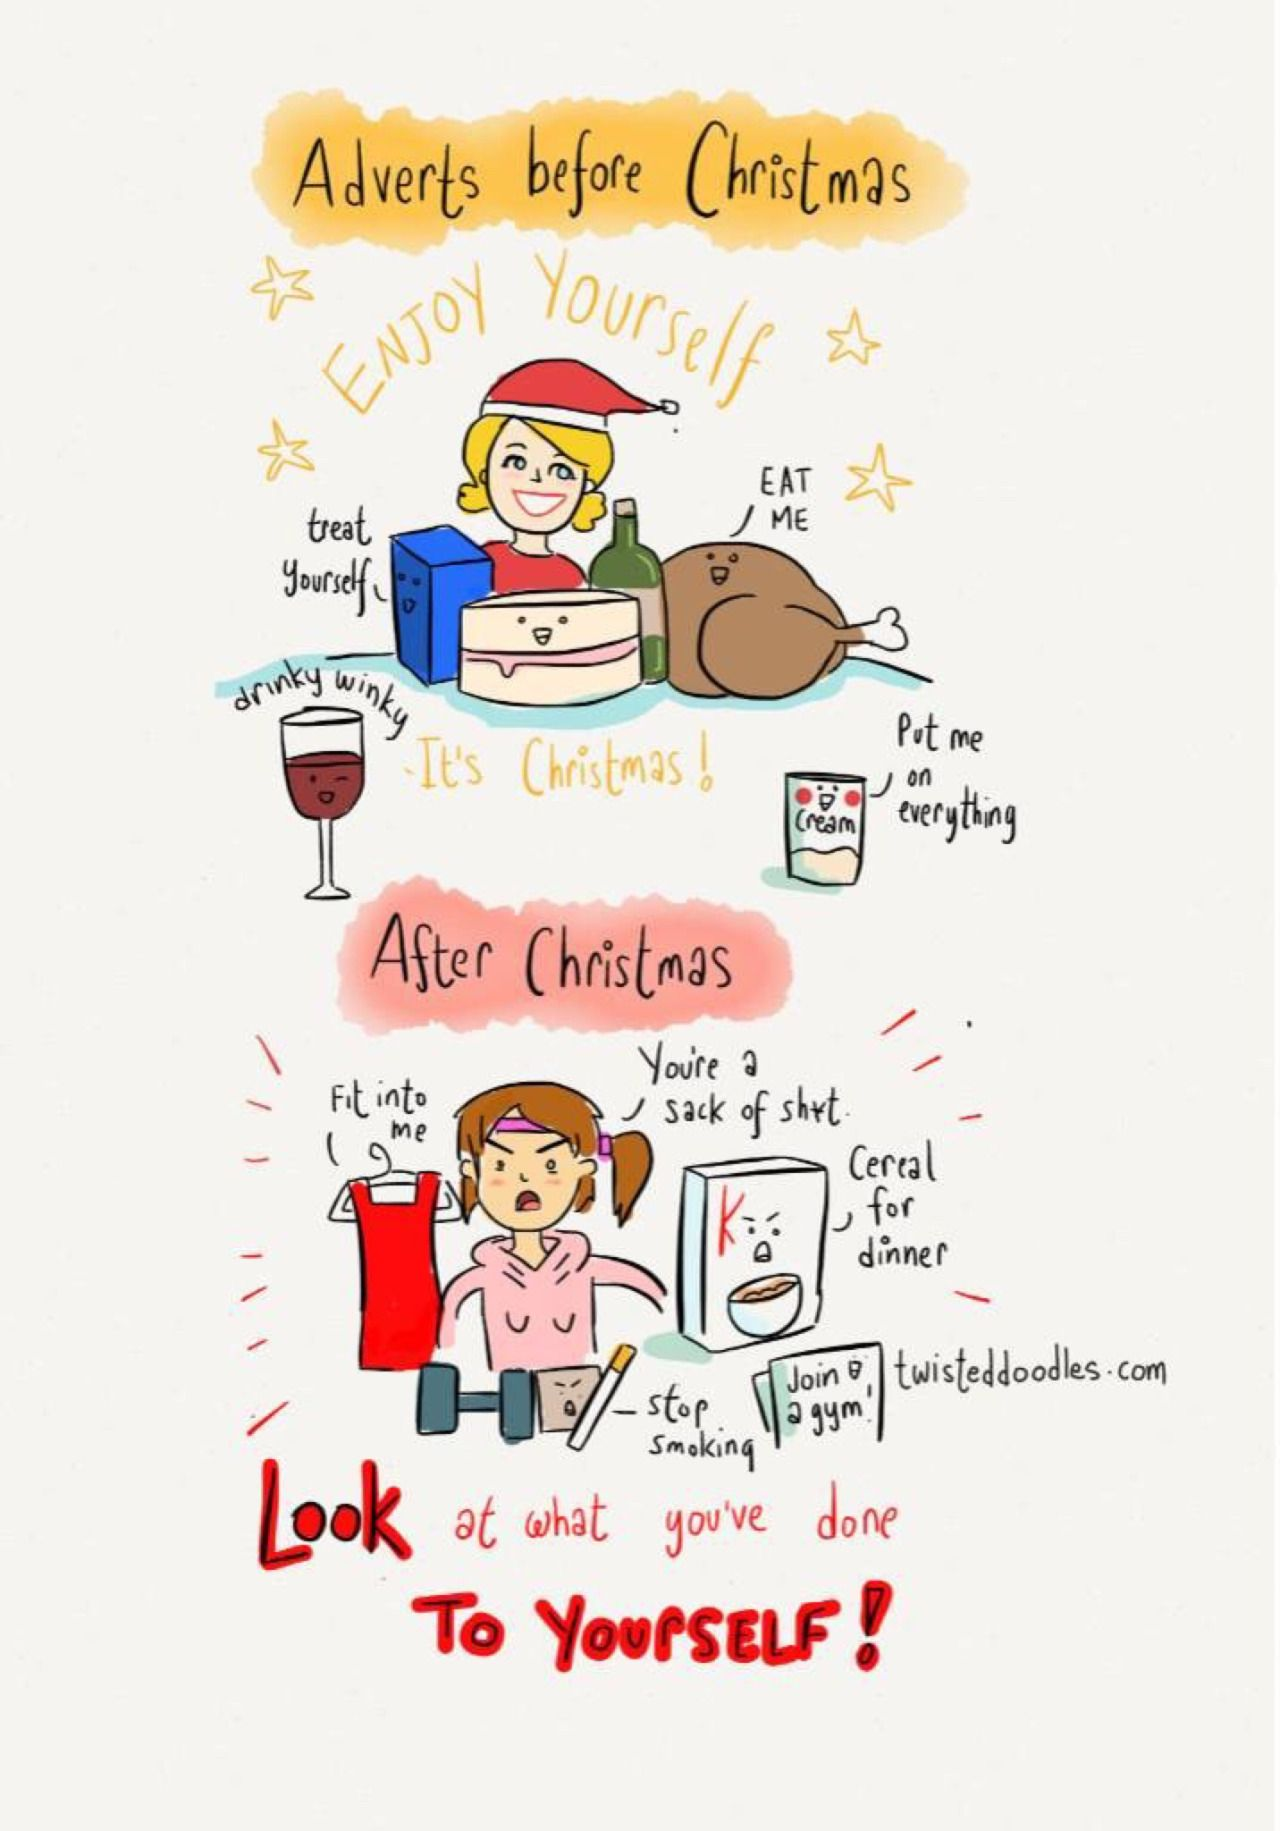 Twisteddoodles Adverts Before And After Christmas